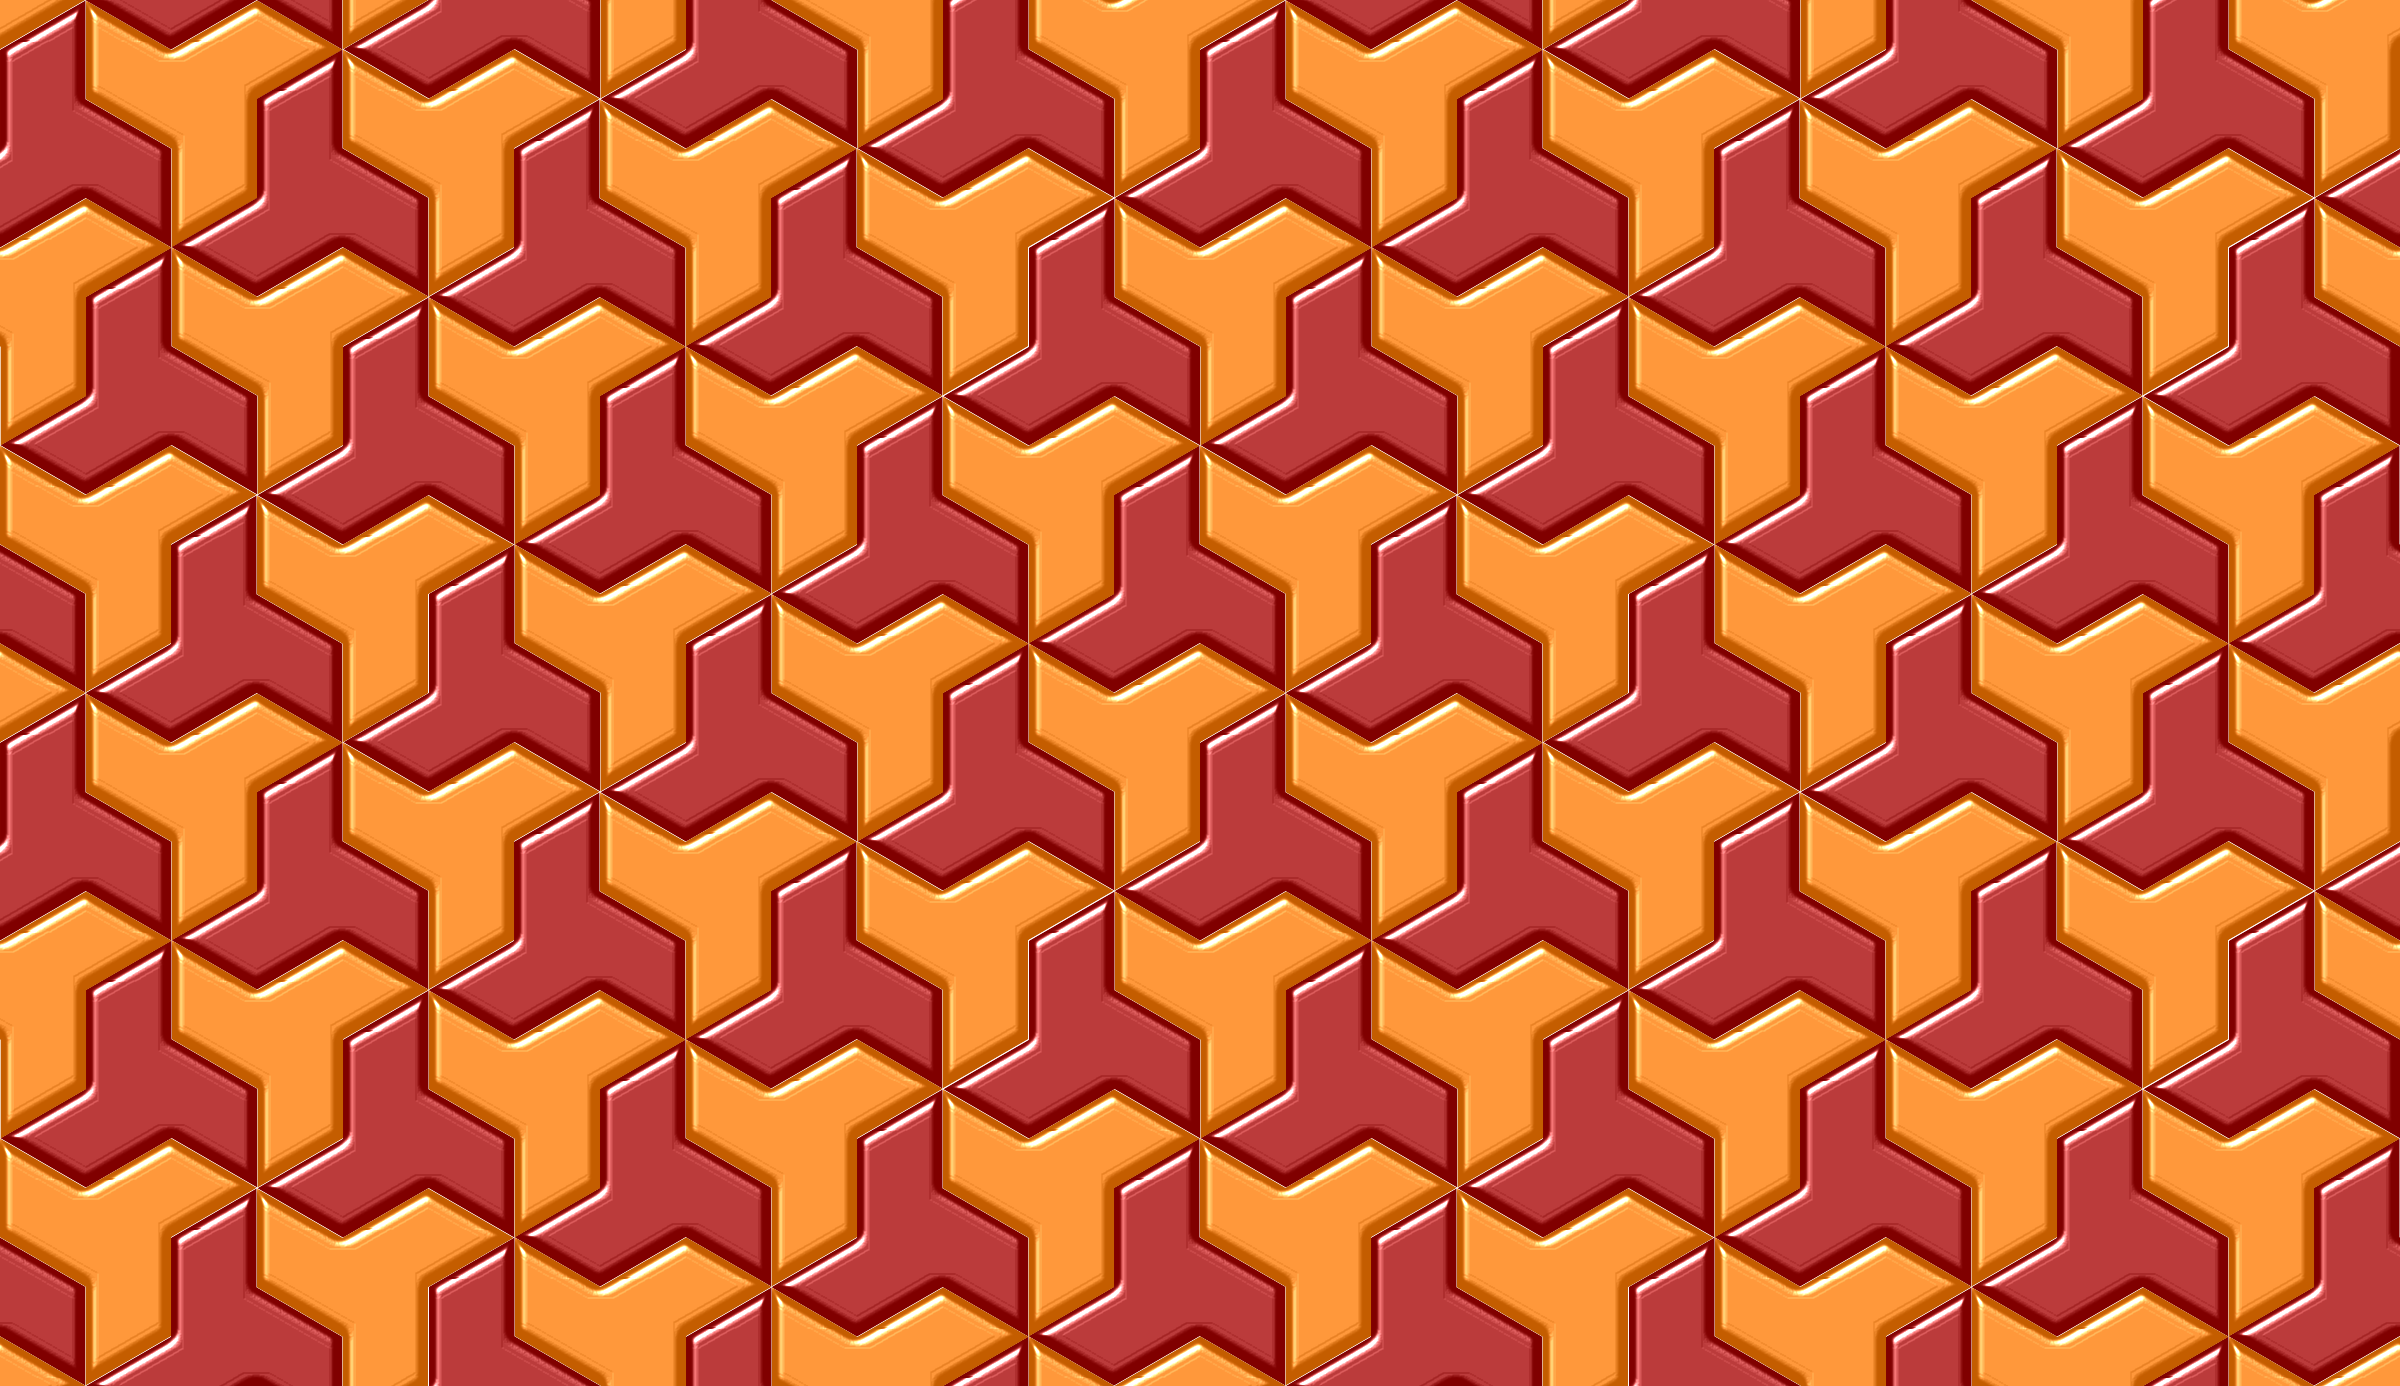 Tessellation 4 (colour 3) by Firkin